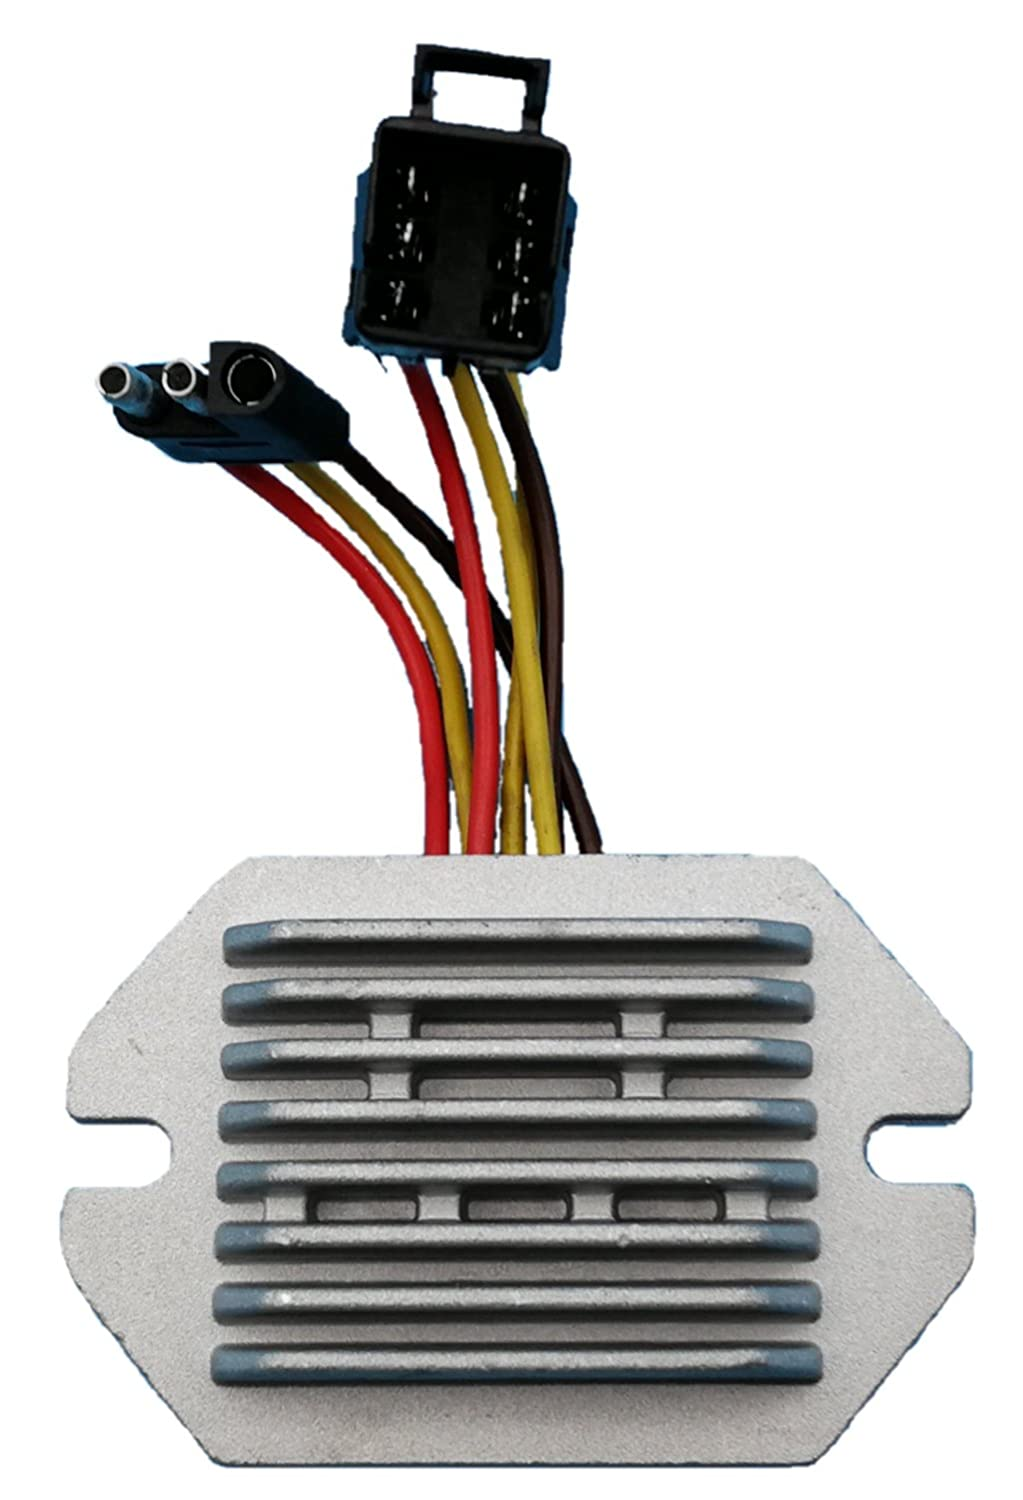 Tuzliufi Voltage Regulator Rectifier Replace Polaris 600 800 Indy SP Pro RMK 144 155 Rush Pro-R Switchback Adventure Assault Voyager 2013 2014 2015 2016 Replace 4013460 New Z61 Generic